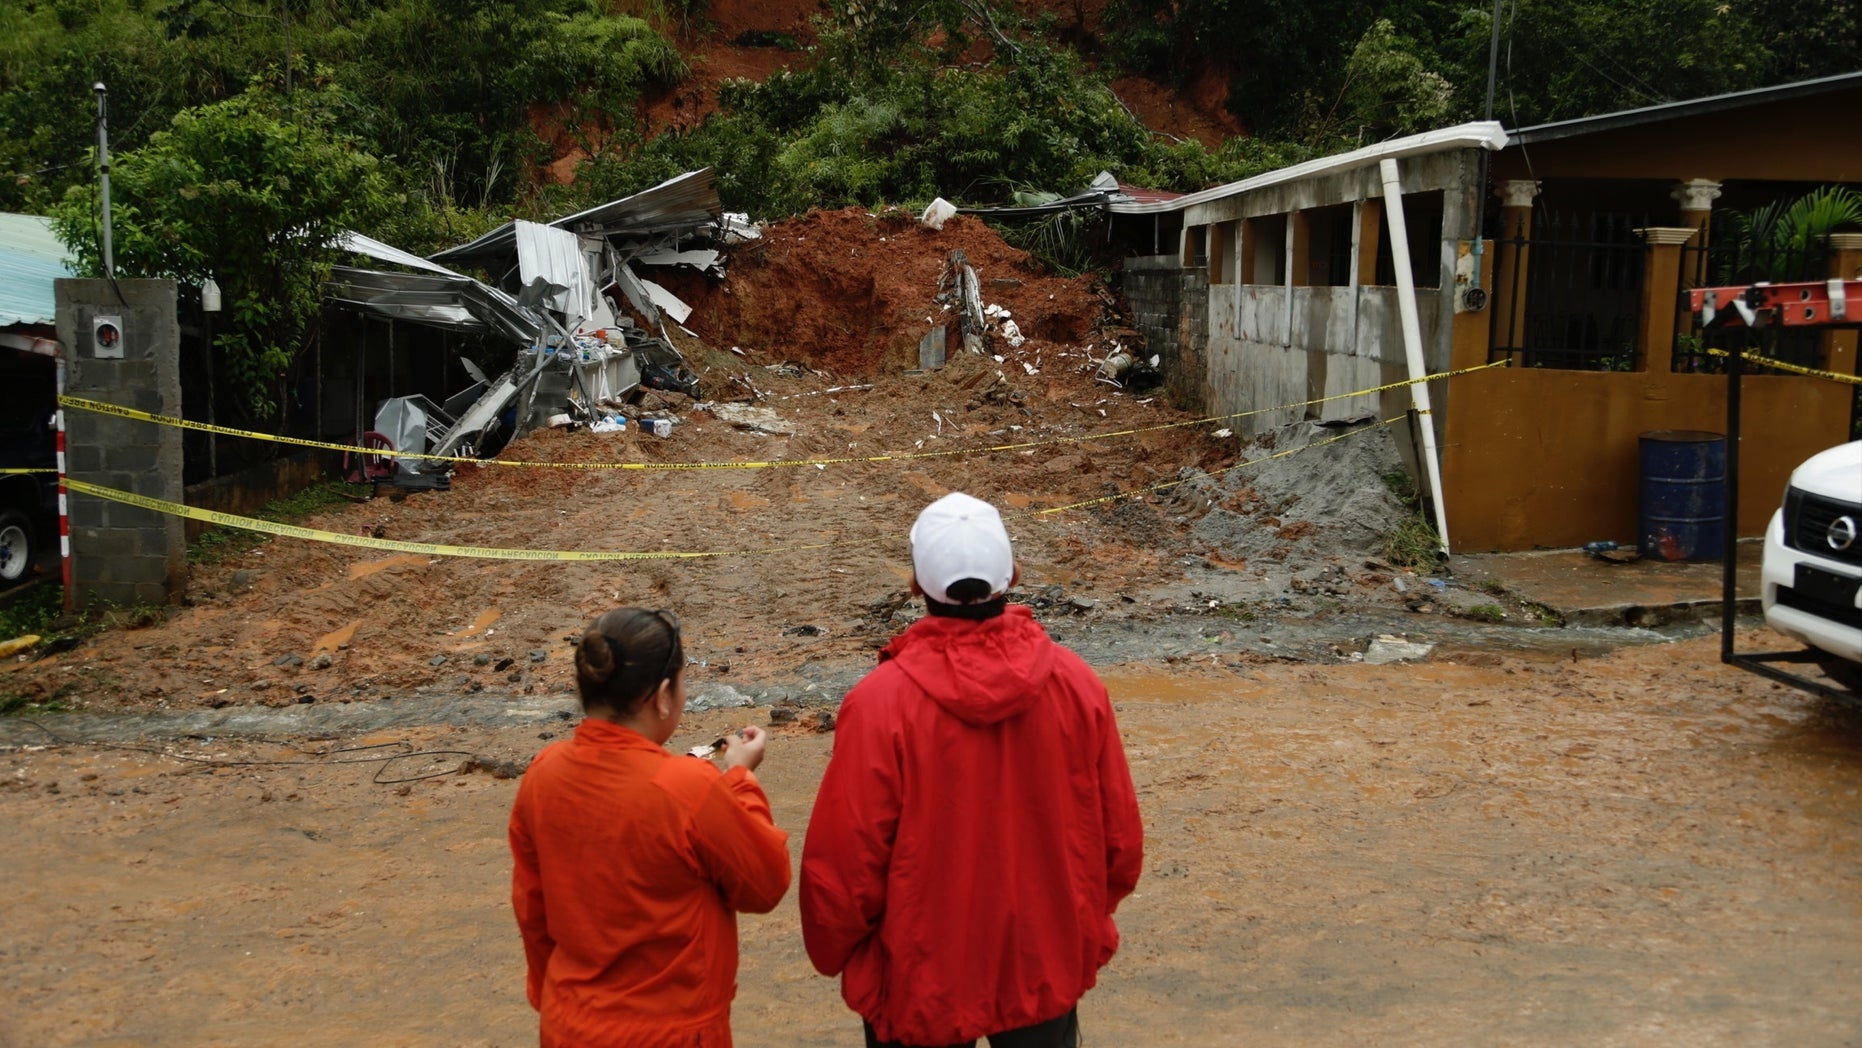 Civil Defense workers look the area where a couple was killed after their home was destroyed by a mudslide in Arraijan on the outskirts of Panama City, Tuesday, Nov. 22, 2016. Civil defense officials in Panama say the country has already seen three deaths blamed on late-season Tropical Storm Otto. (AP Photo/Arnulfo Franco)